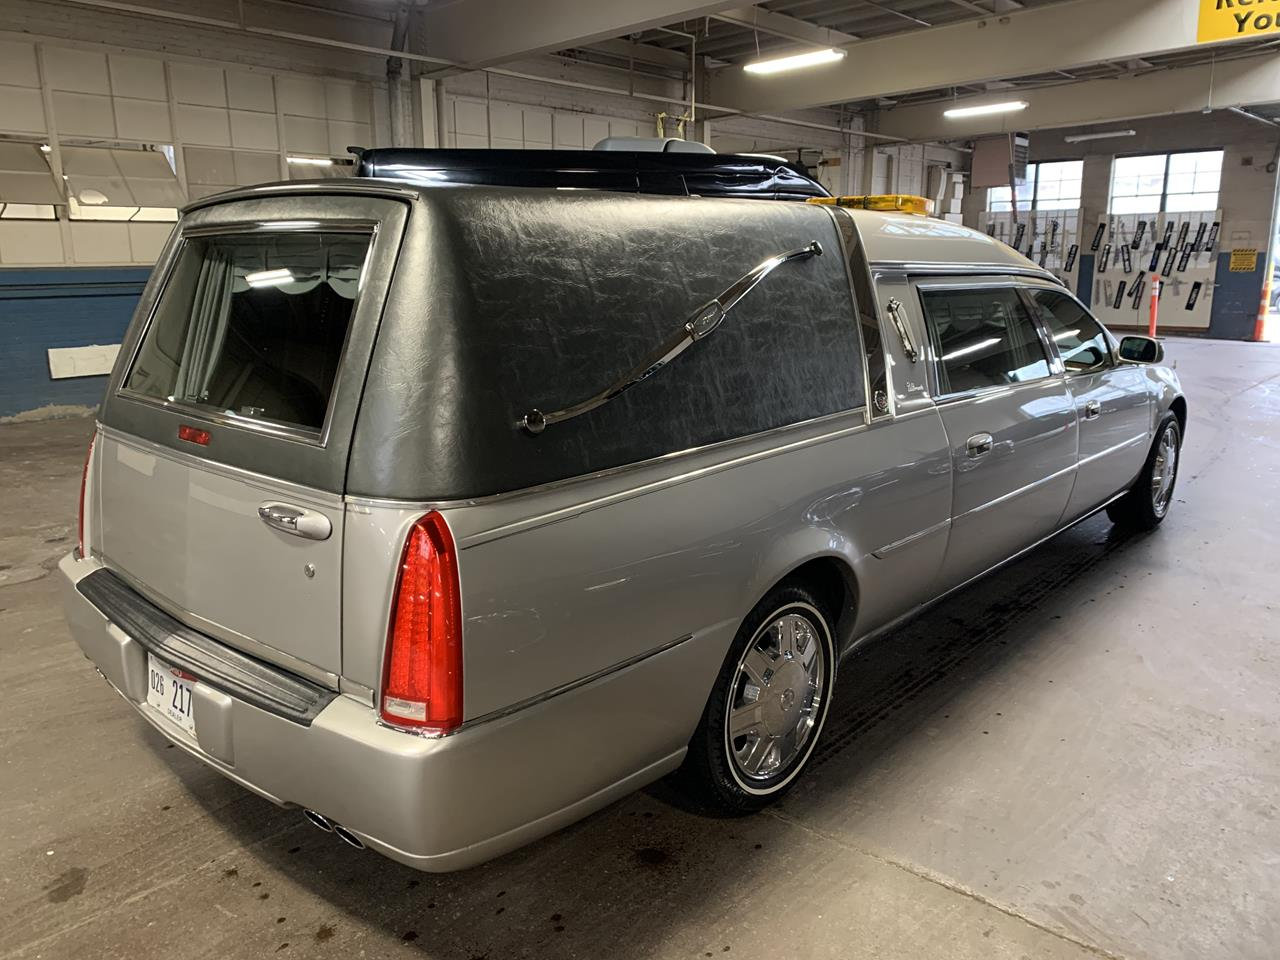 2006 Cadillac Eagle Kingsley Hearse 900 5